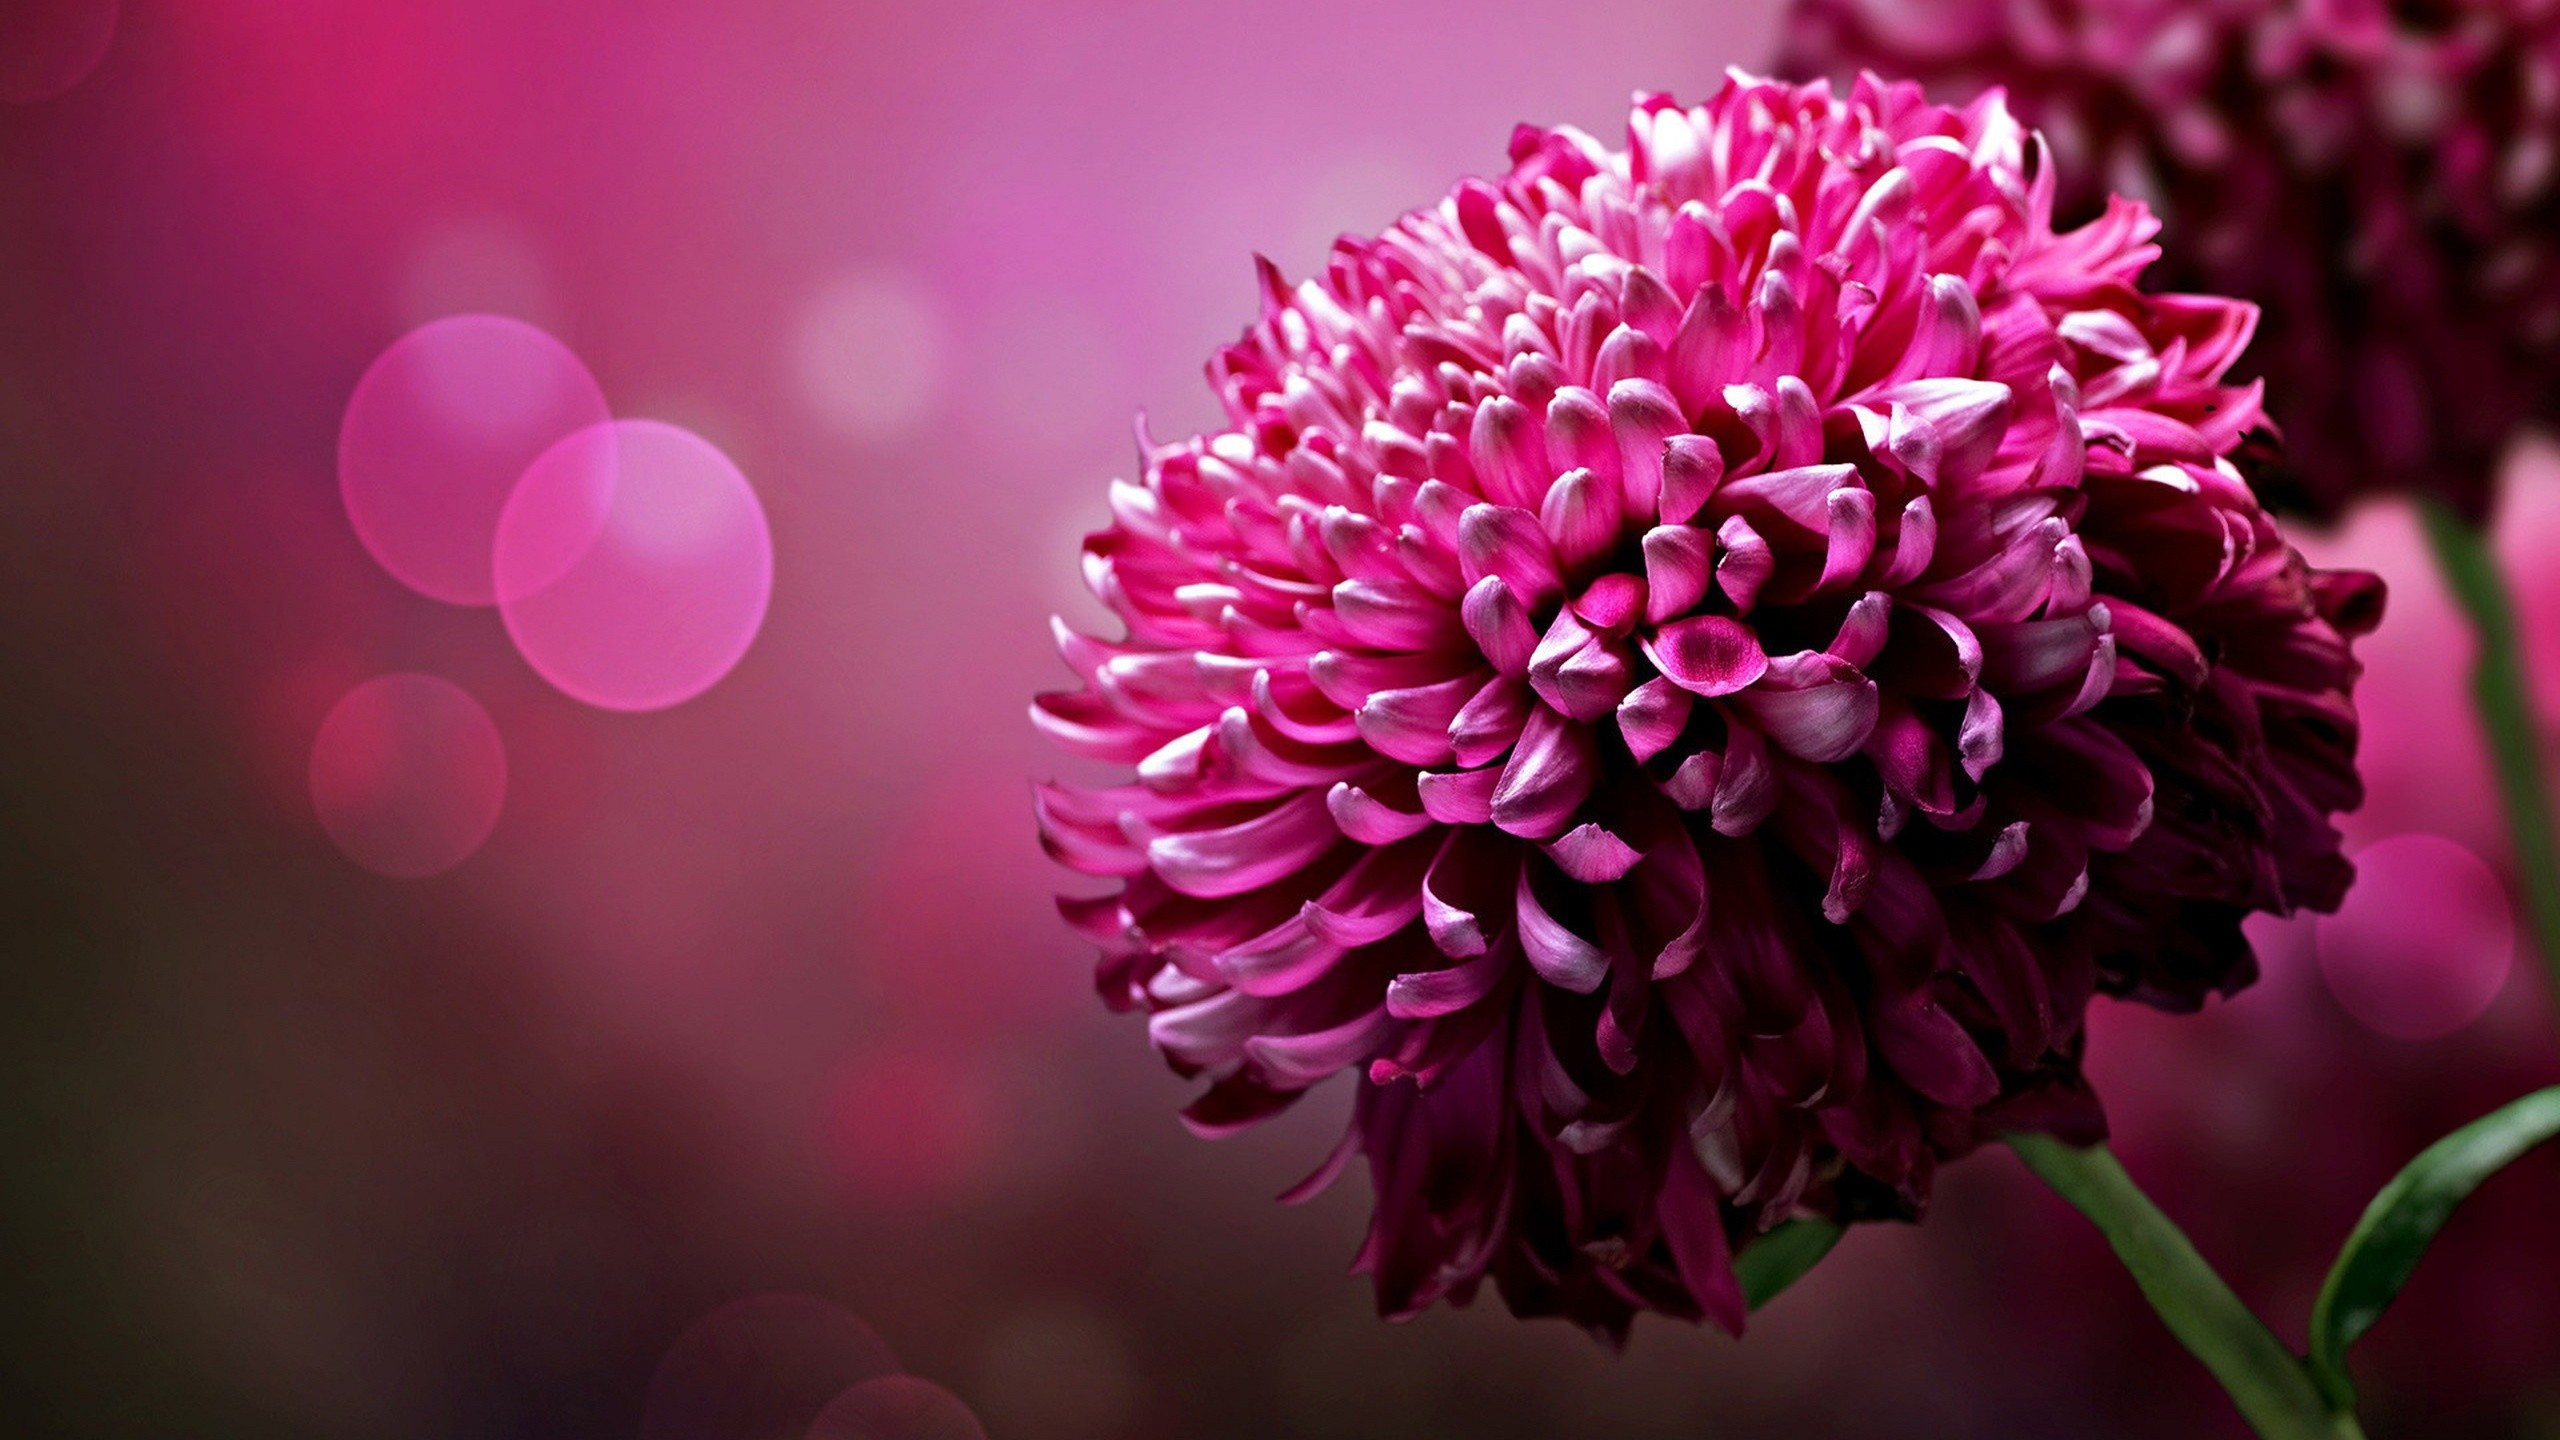 2560x1440 Pink Flowers HD Wallpapers - HD Wallpapers Inn